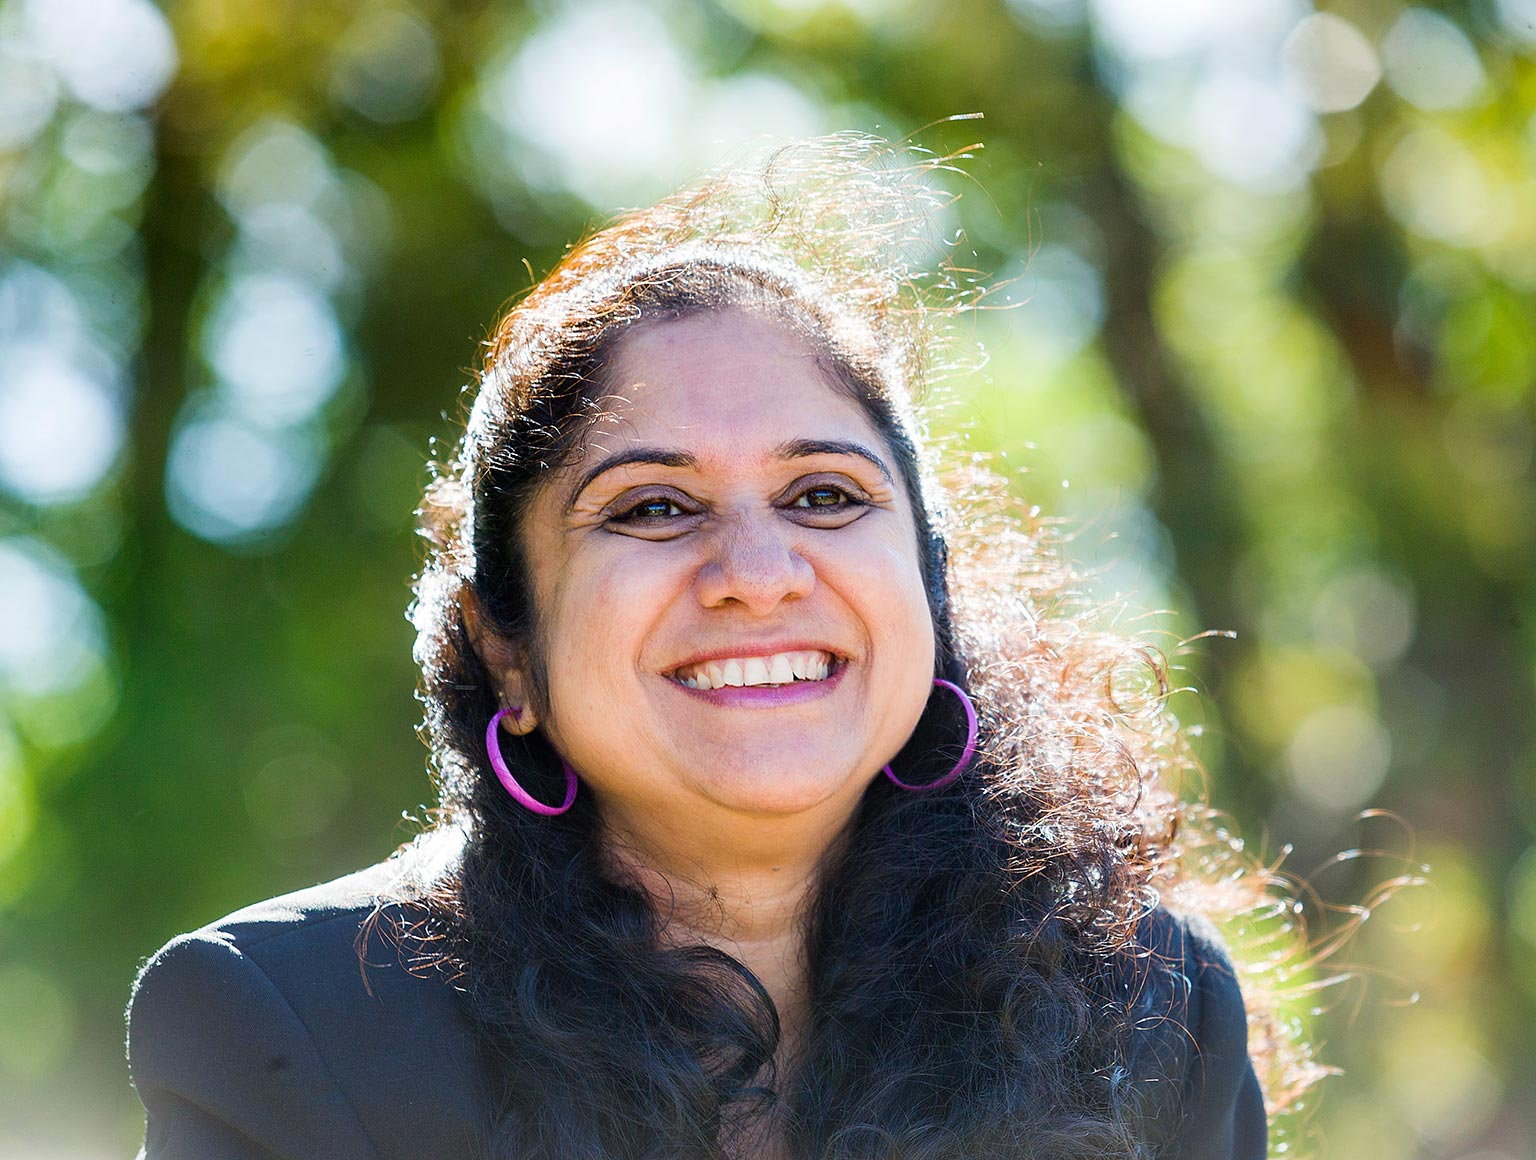 Chandana Rao smiling whilst sitting outside in the sun with a background of tall trees.